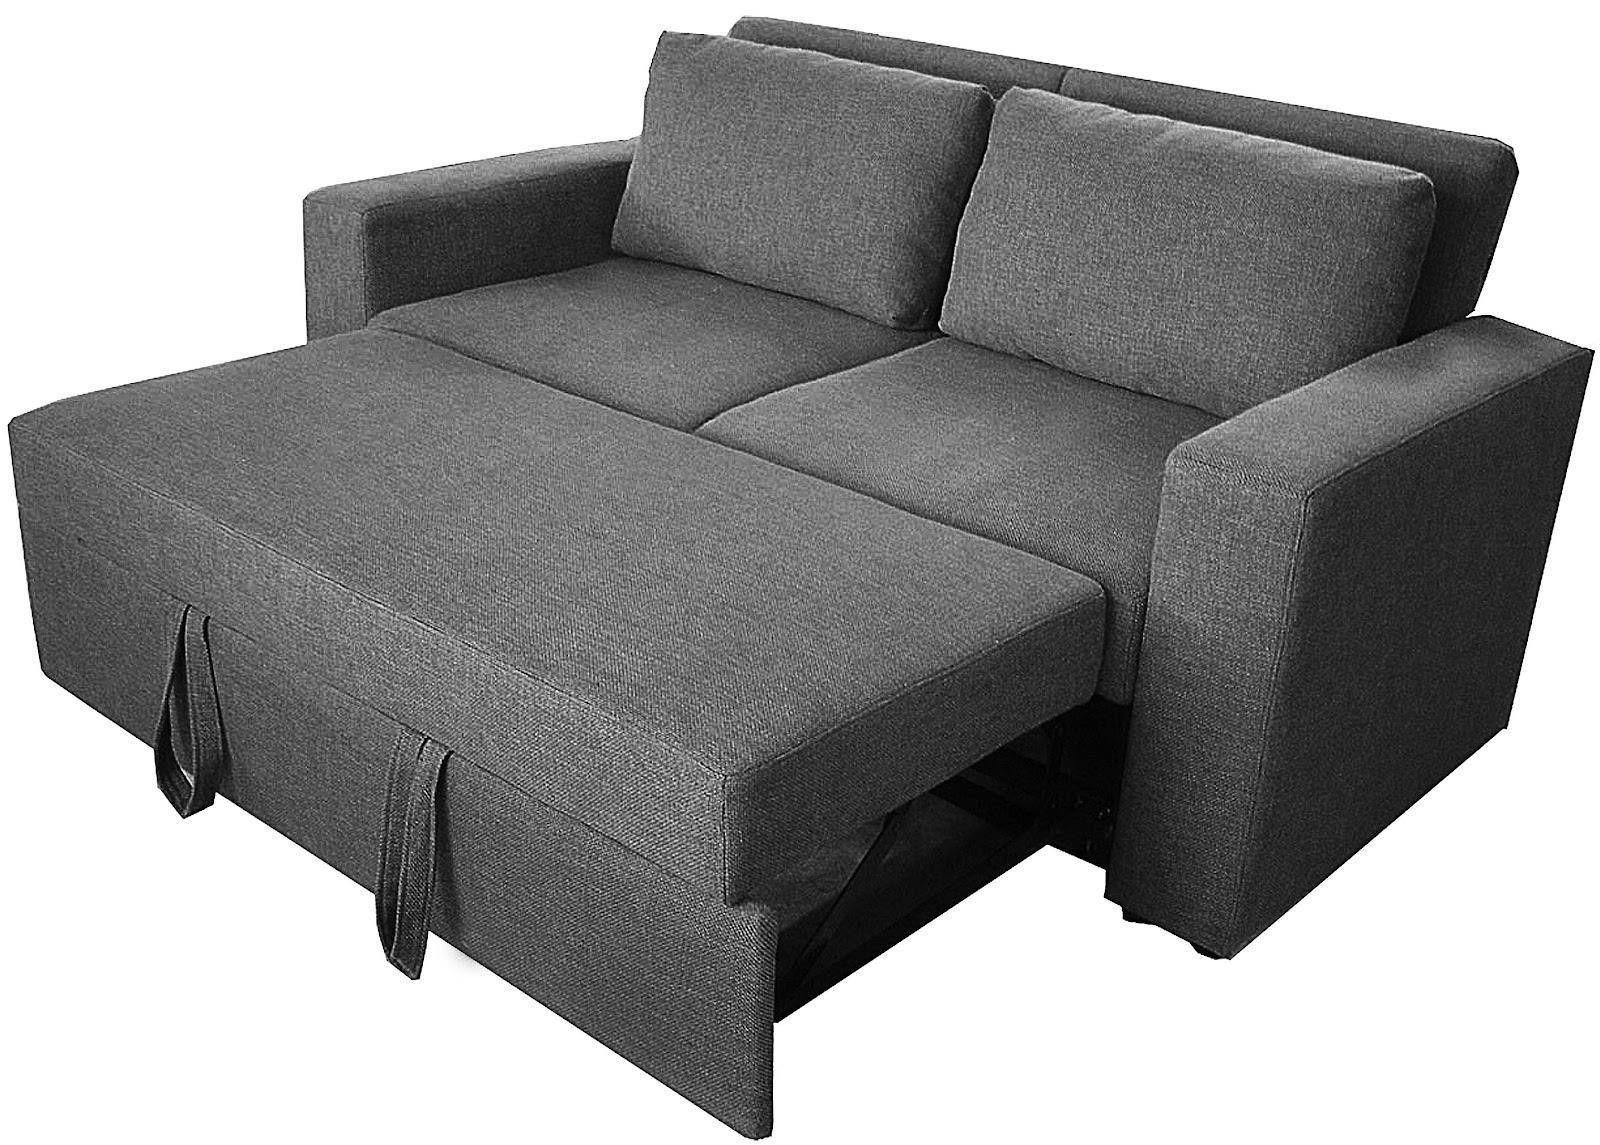 Terrific Awesome Elegant Sofa With Pull Out Bed 92 With Additional Inzonedesignstudio Interior Chair Design Inzonedesignstudiocom